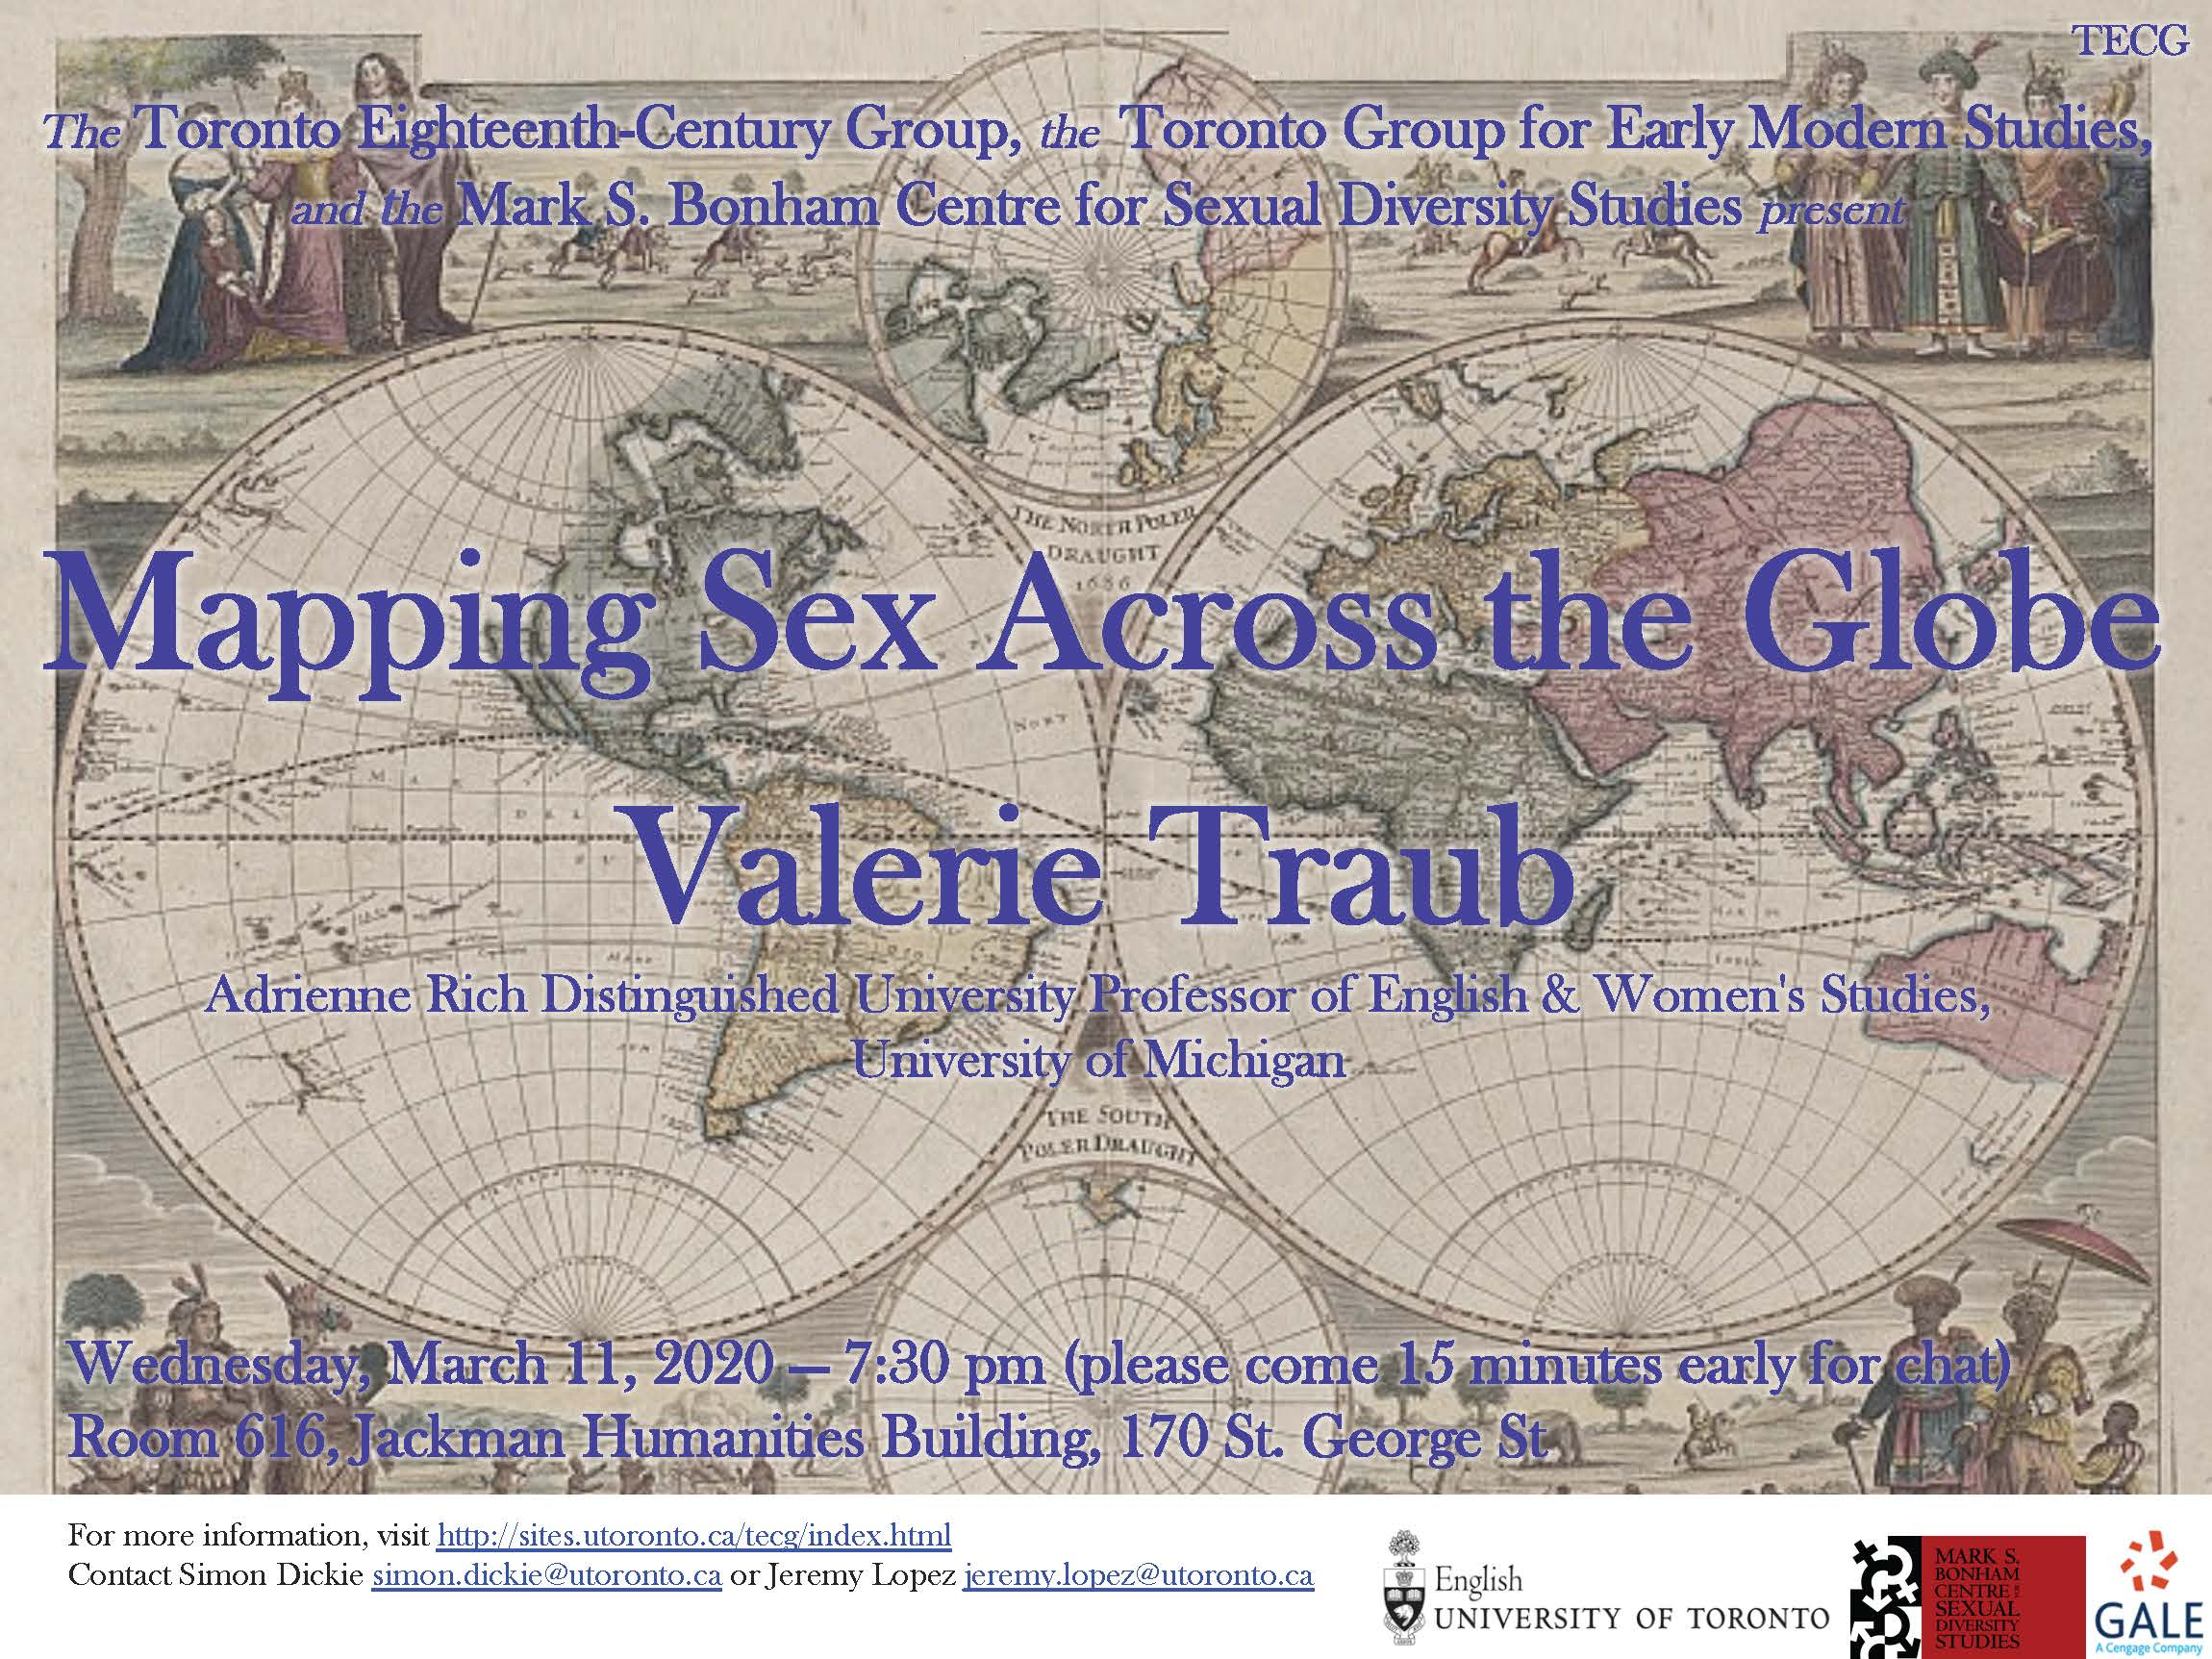 Mapping Sex Across the Globe: Valerie Traub